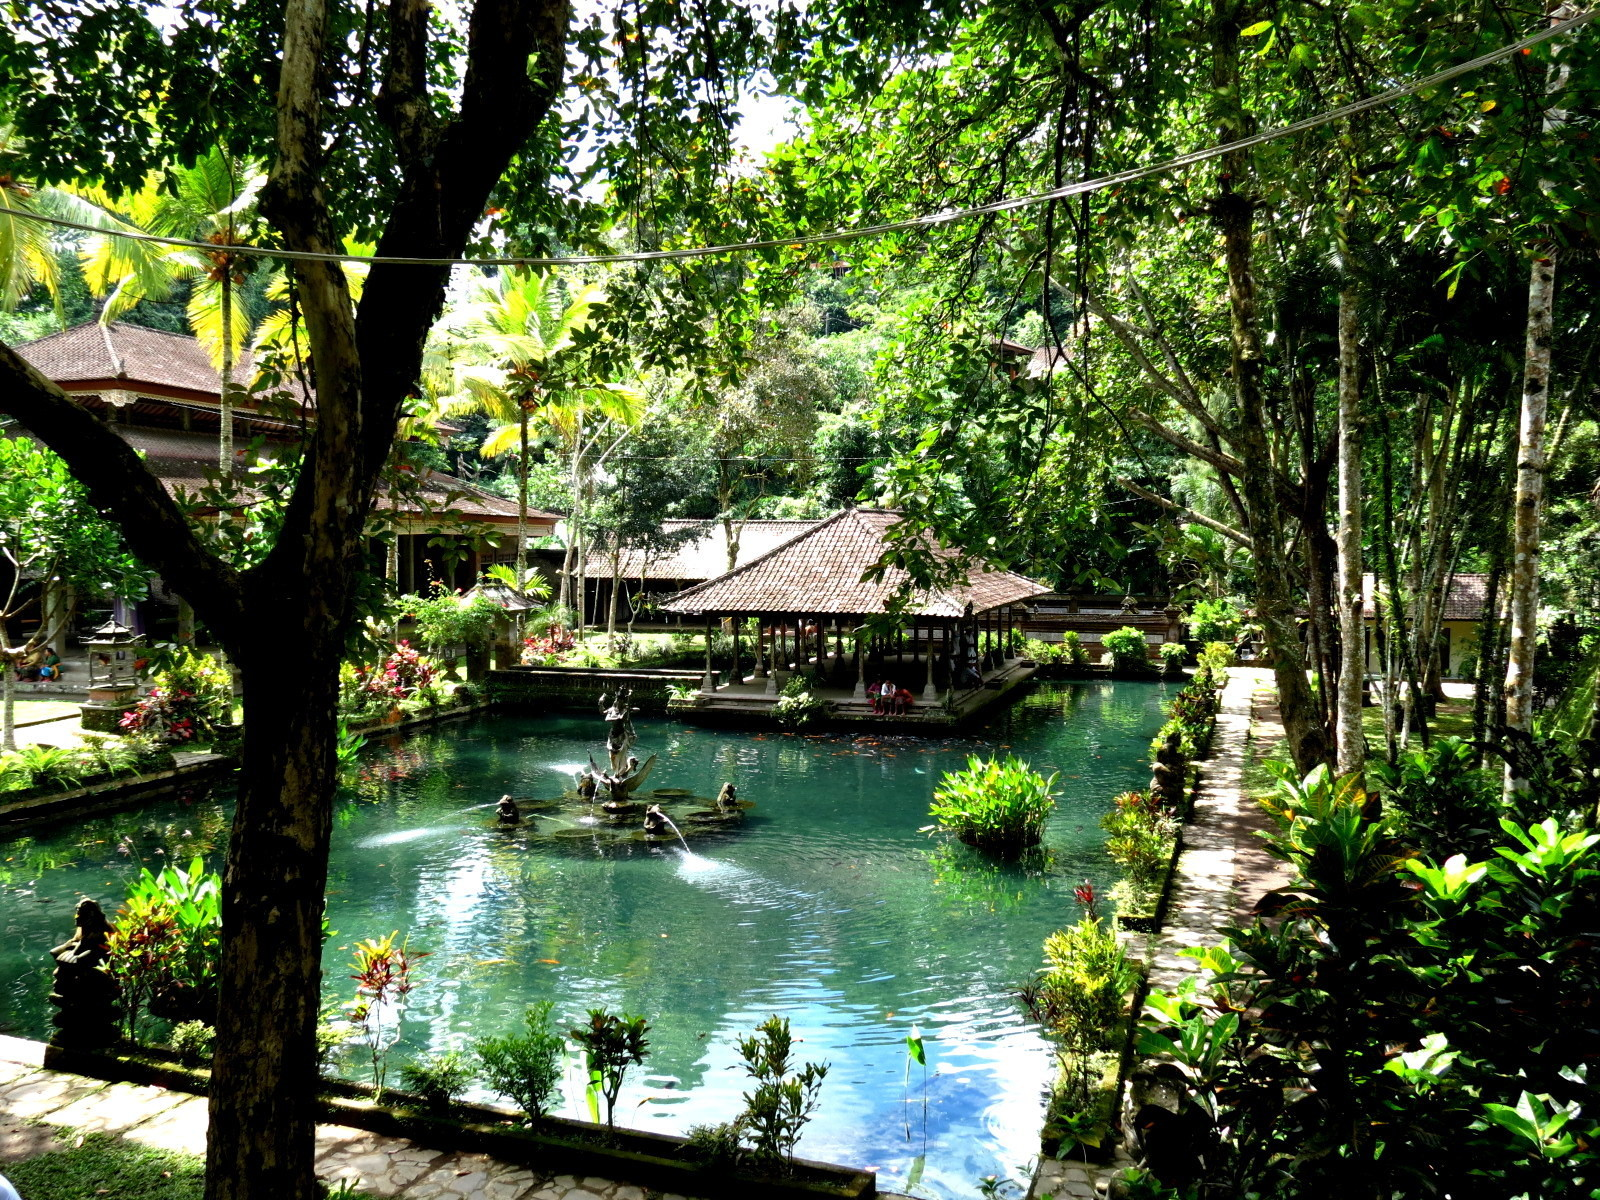 Danau Tour : Live an incredible adventure while exploring the lakes of Bali with our scooters.